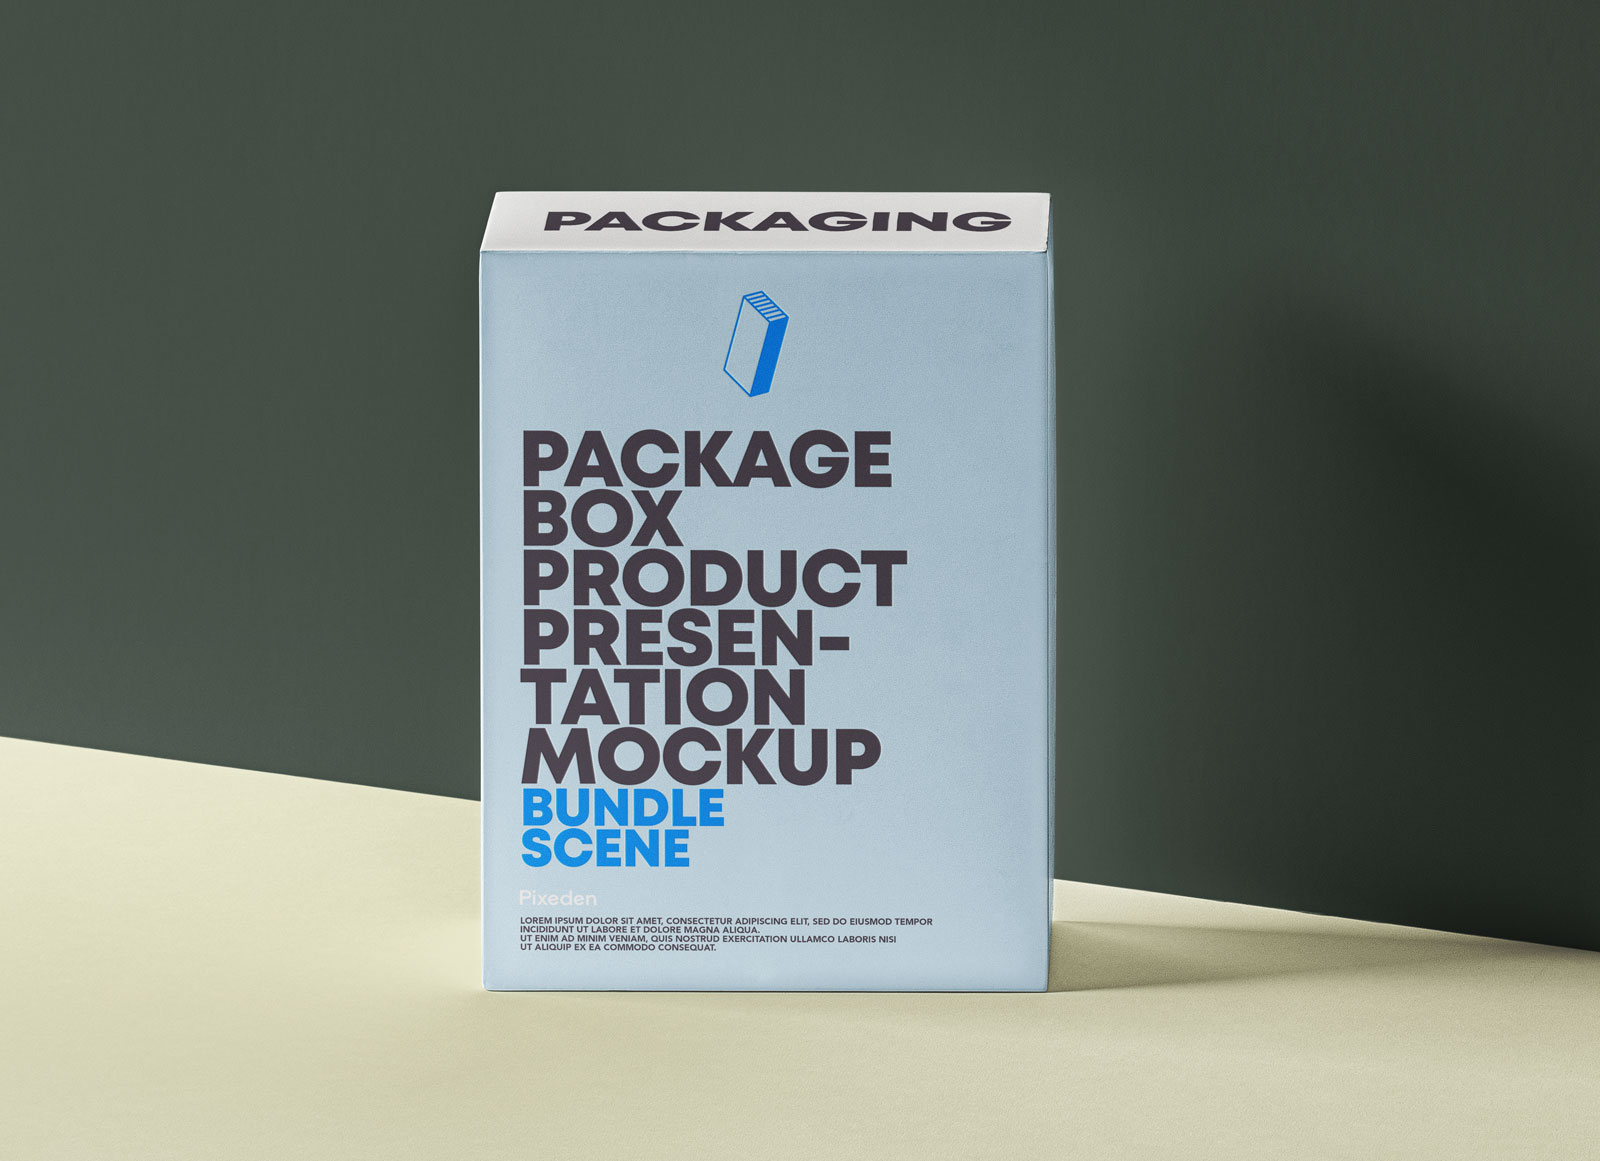 Free-Product-Package-Presentation-Mockup-PSD